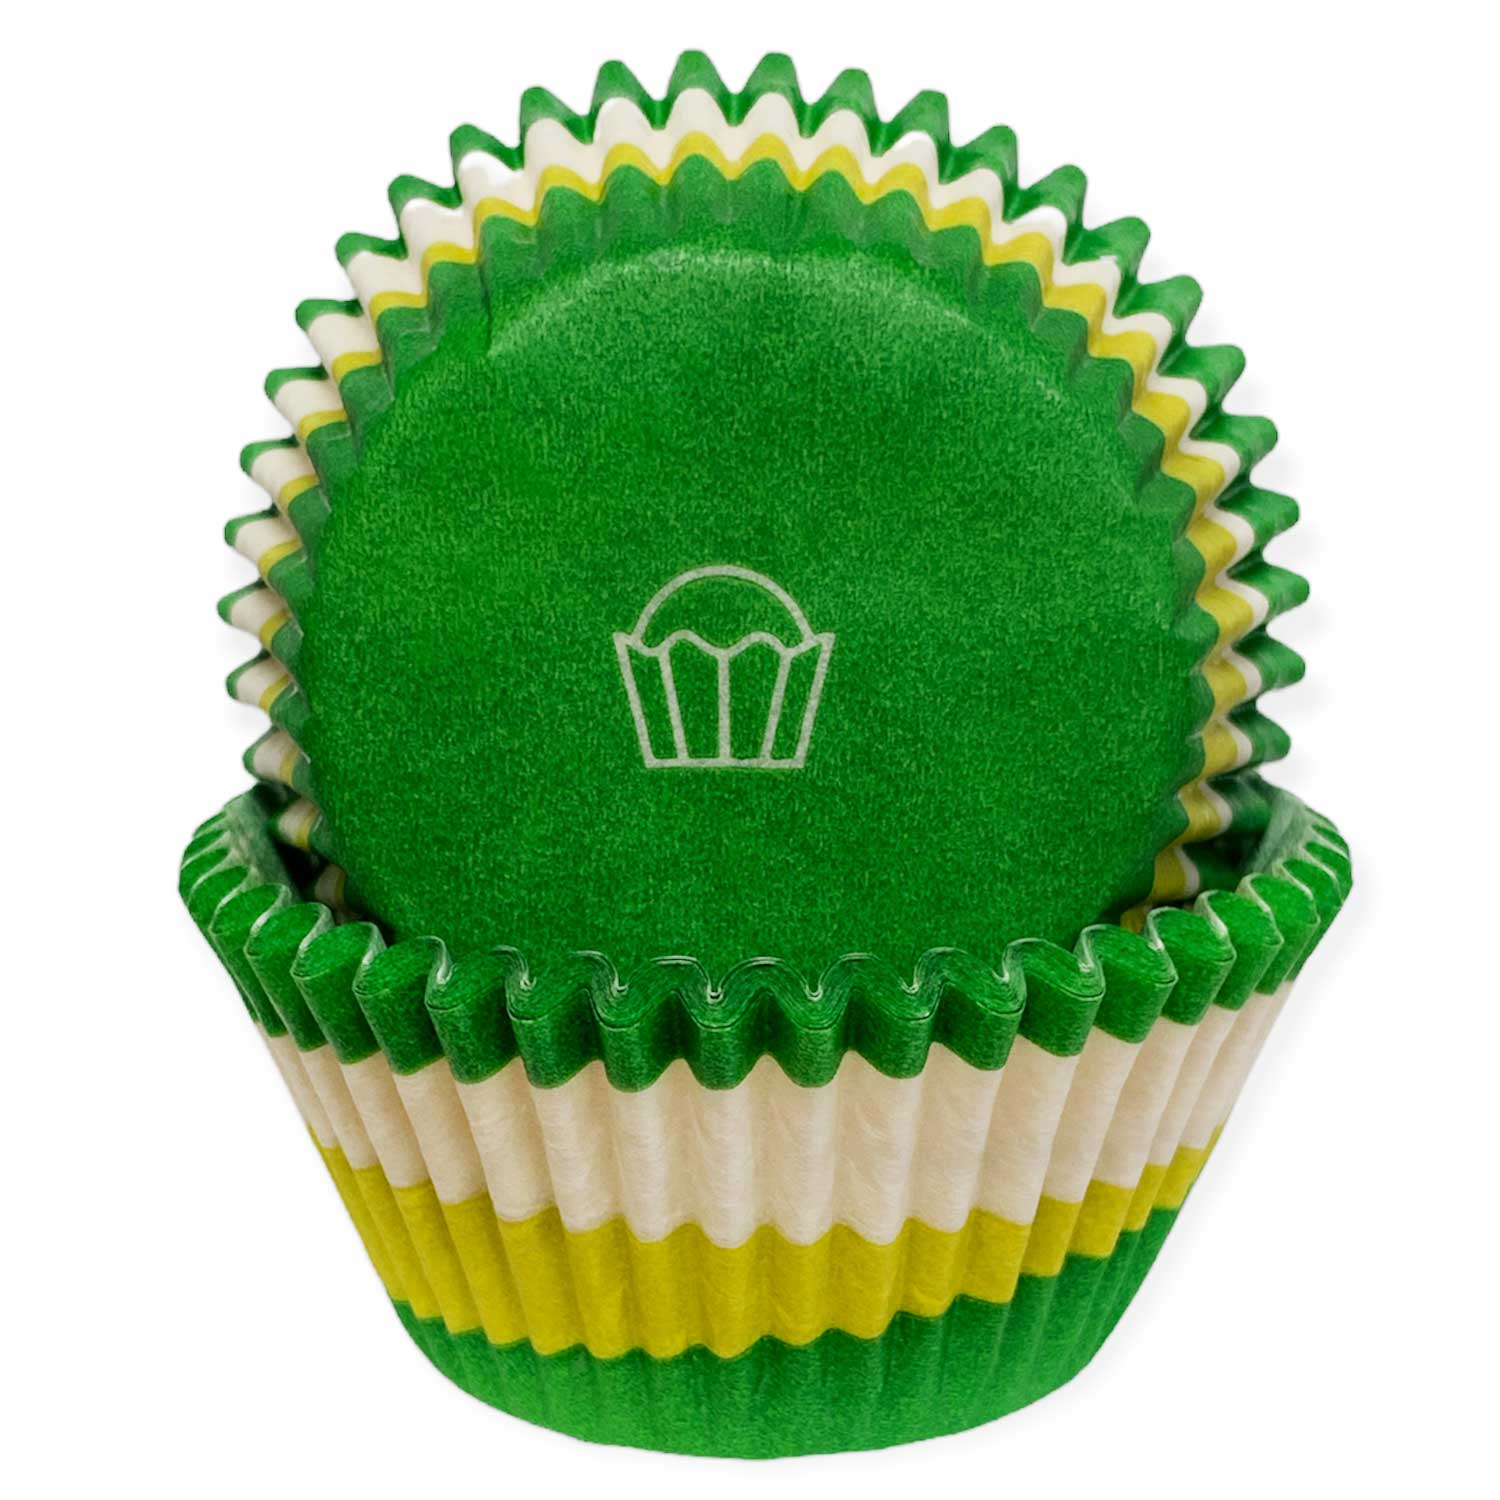 Green Swirl Standard Baking Cups